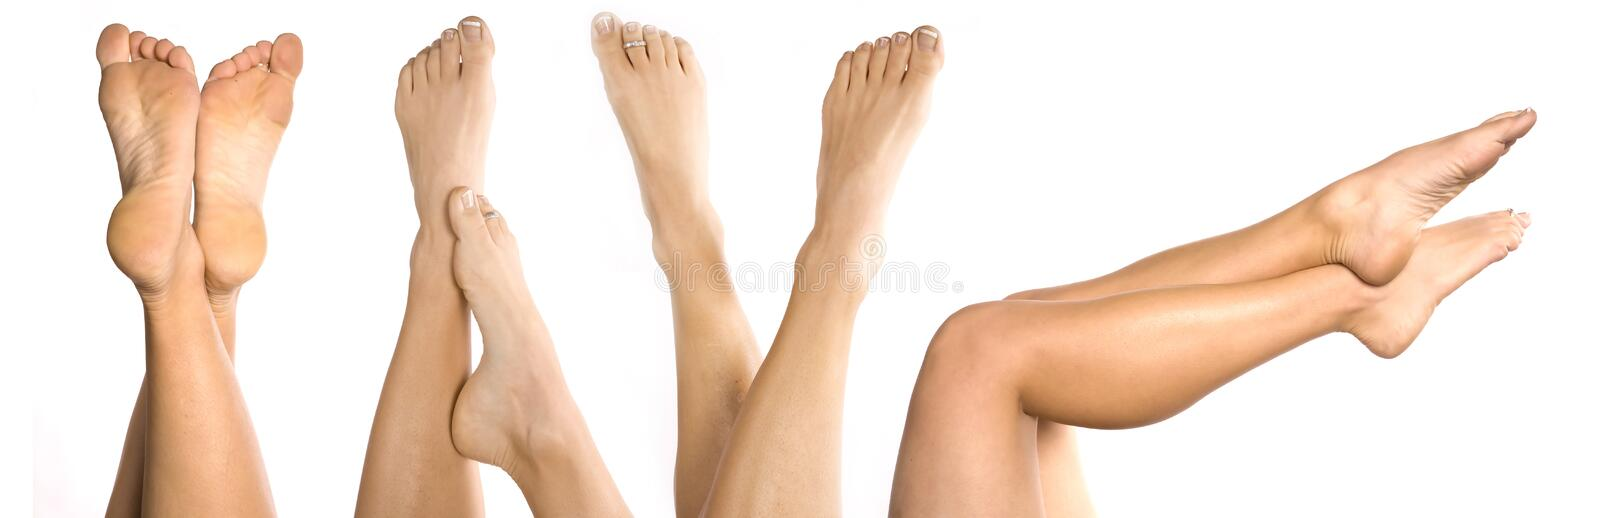 Lots of Legs royalty free stock photo